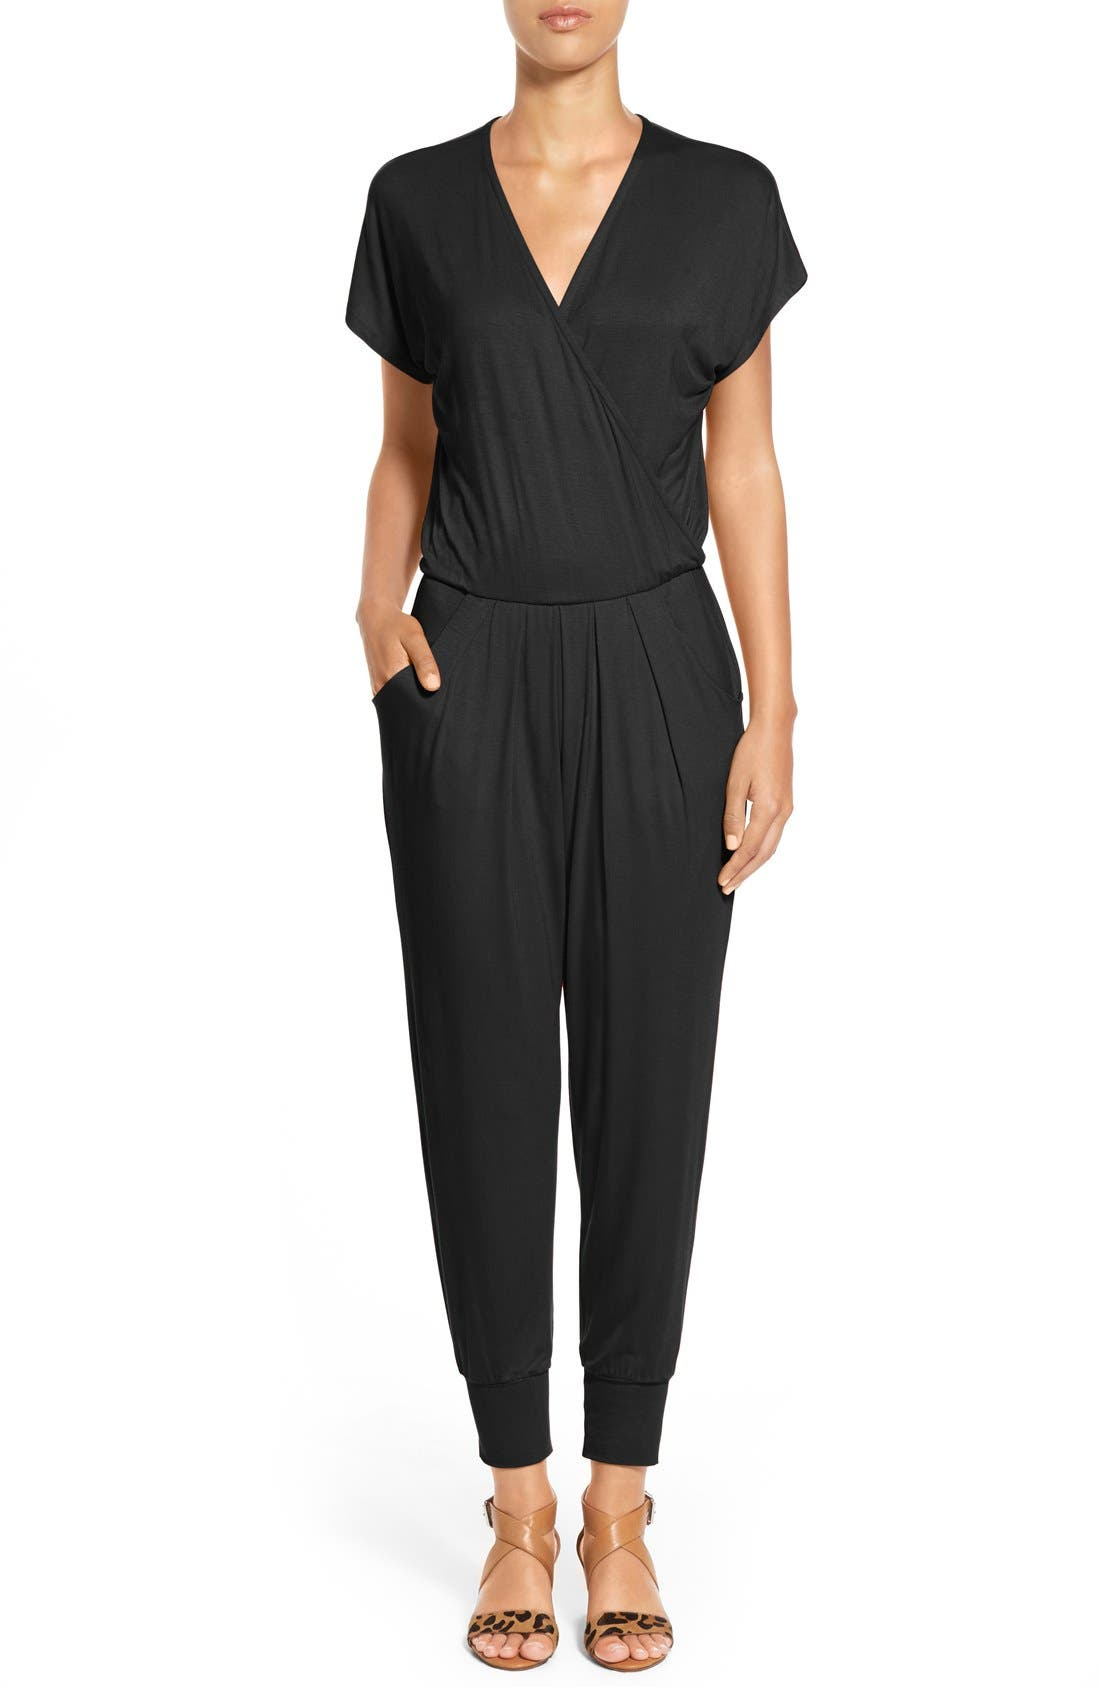 Main Image - Loveappella Short Sleeve Wrap Top Jumpsuit (Regular & Petite)